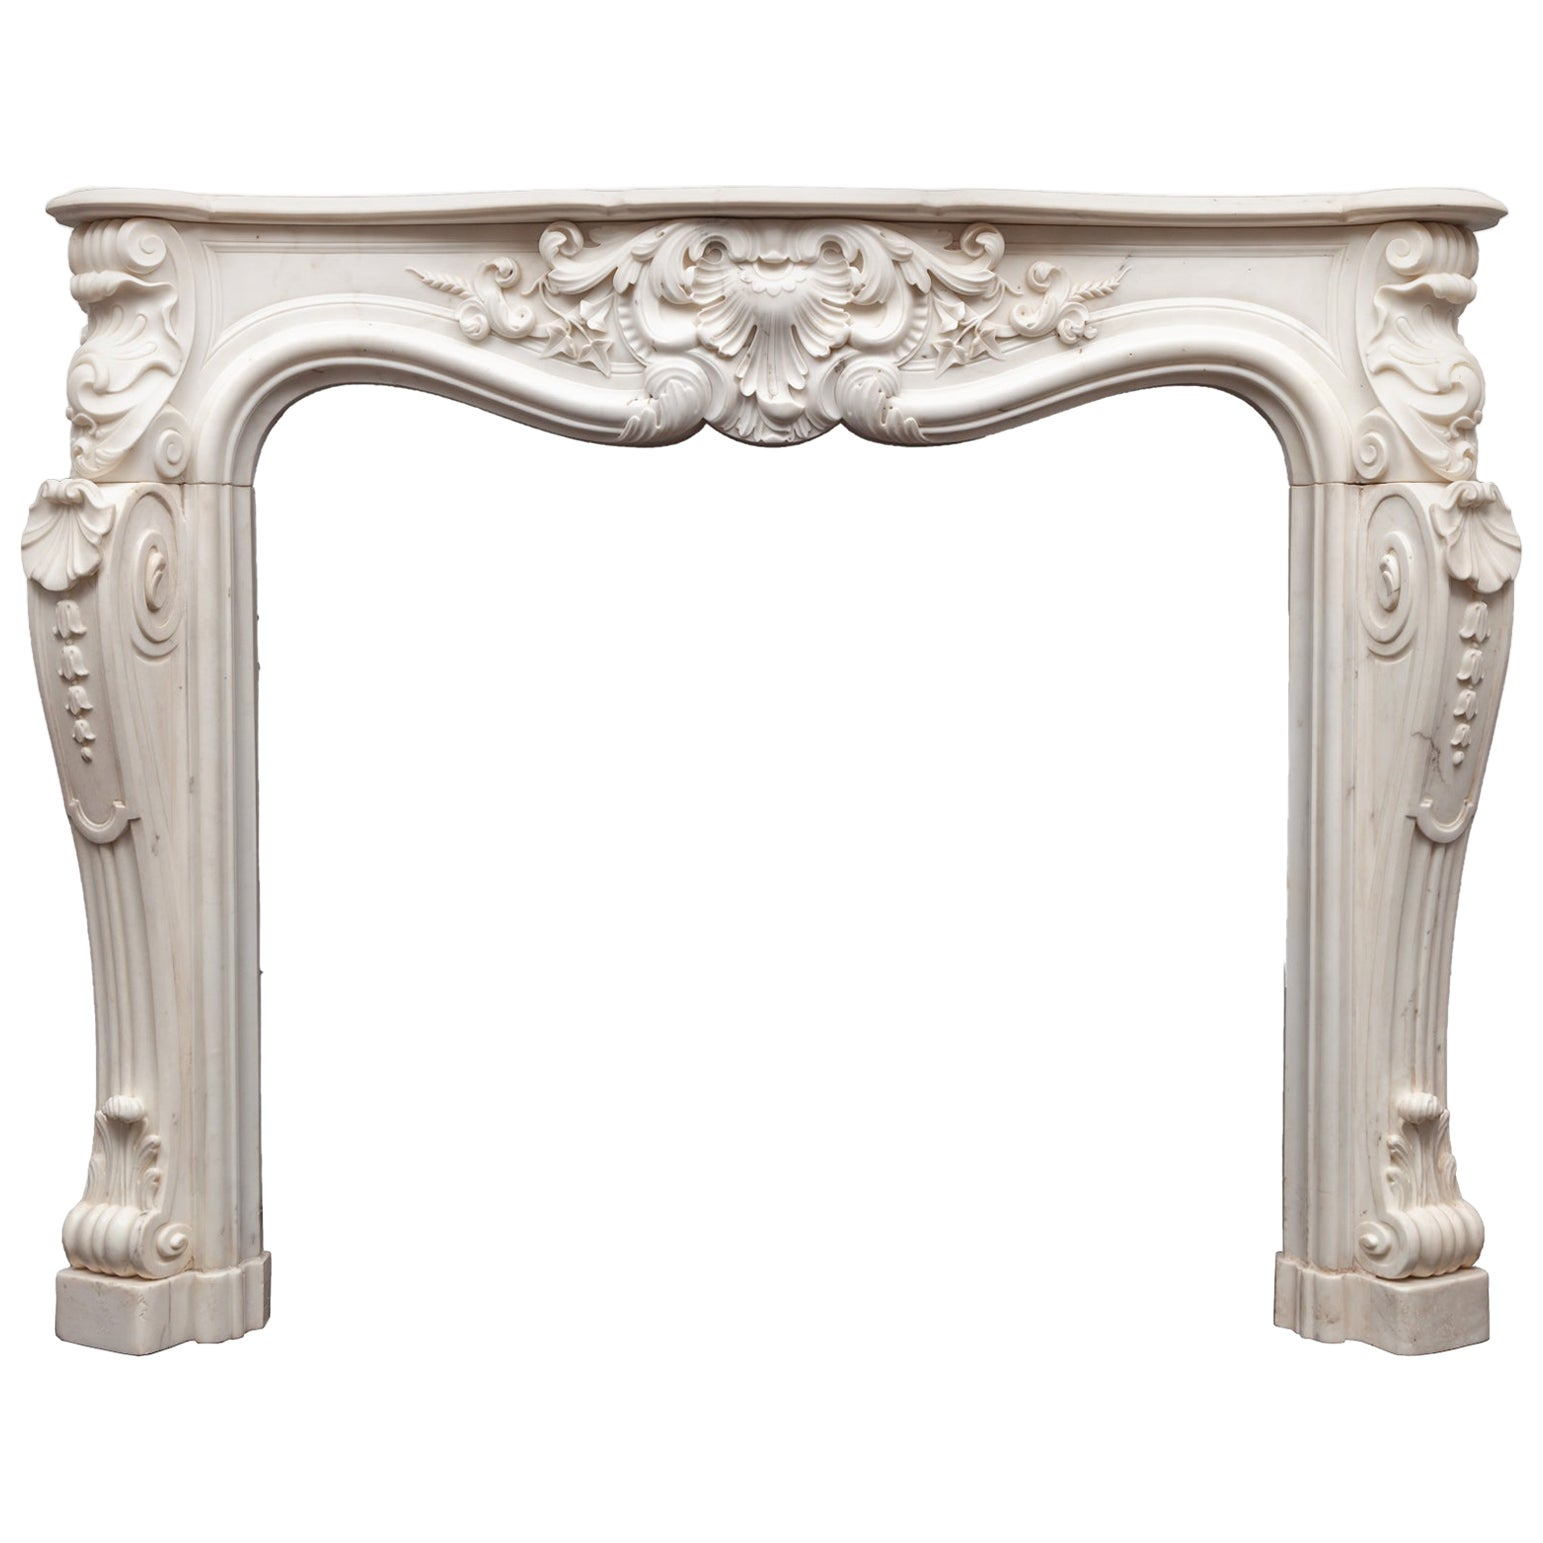 Antique Rococo Style Statuary Marble Mantel